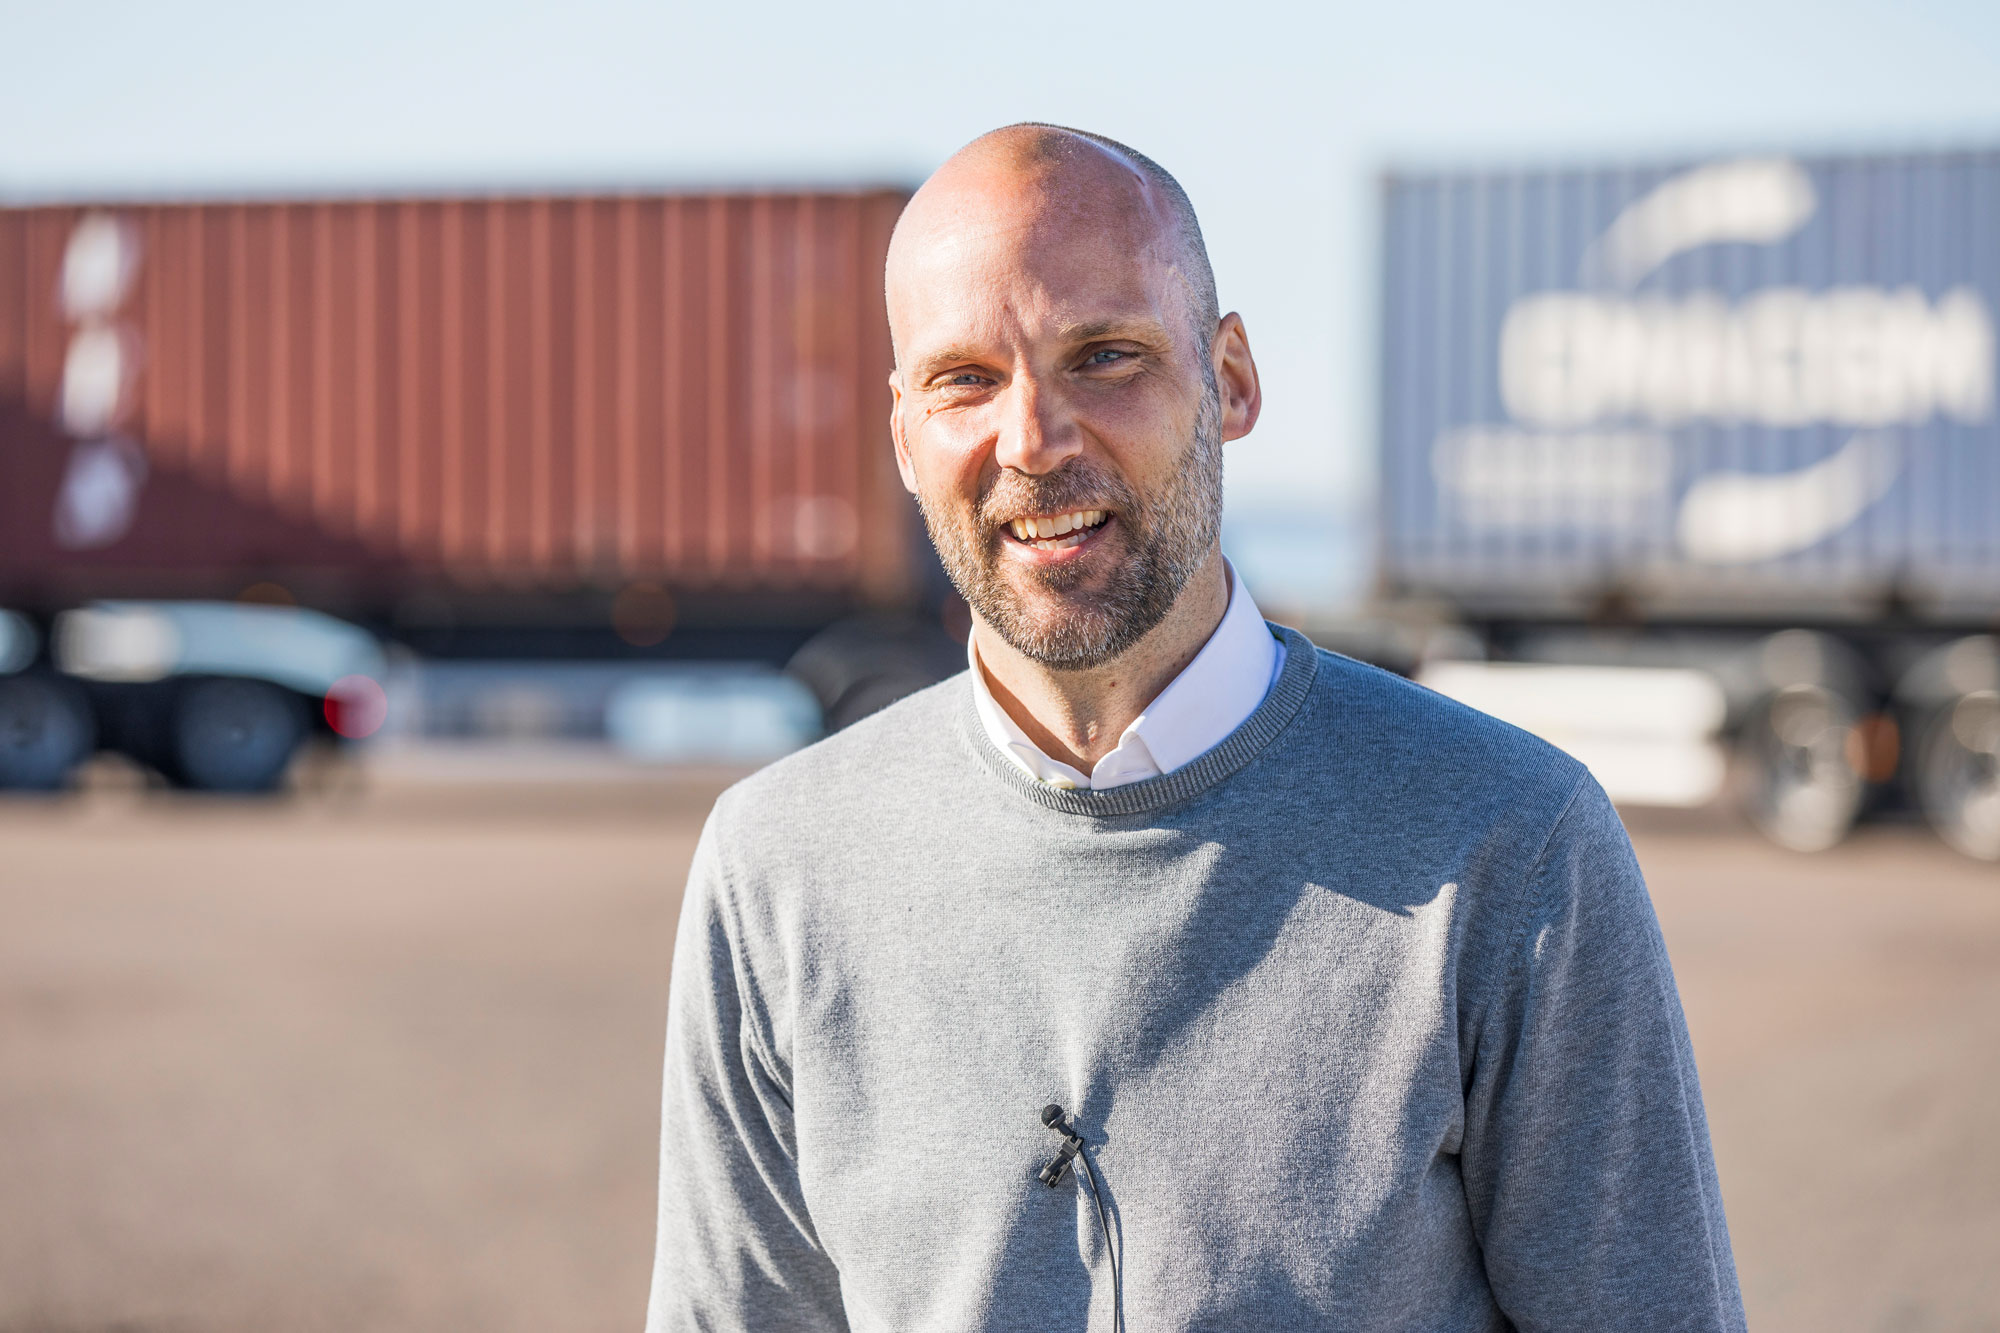 Johan Walther, Supply Chain Manager at Höganäs AB.